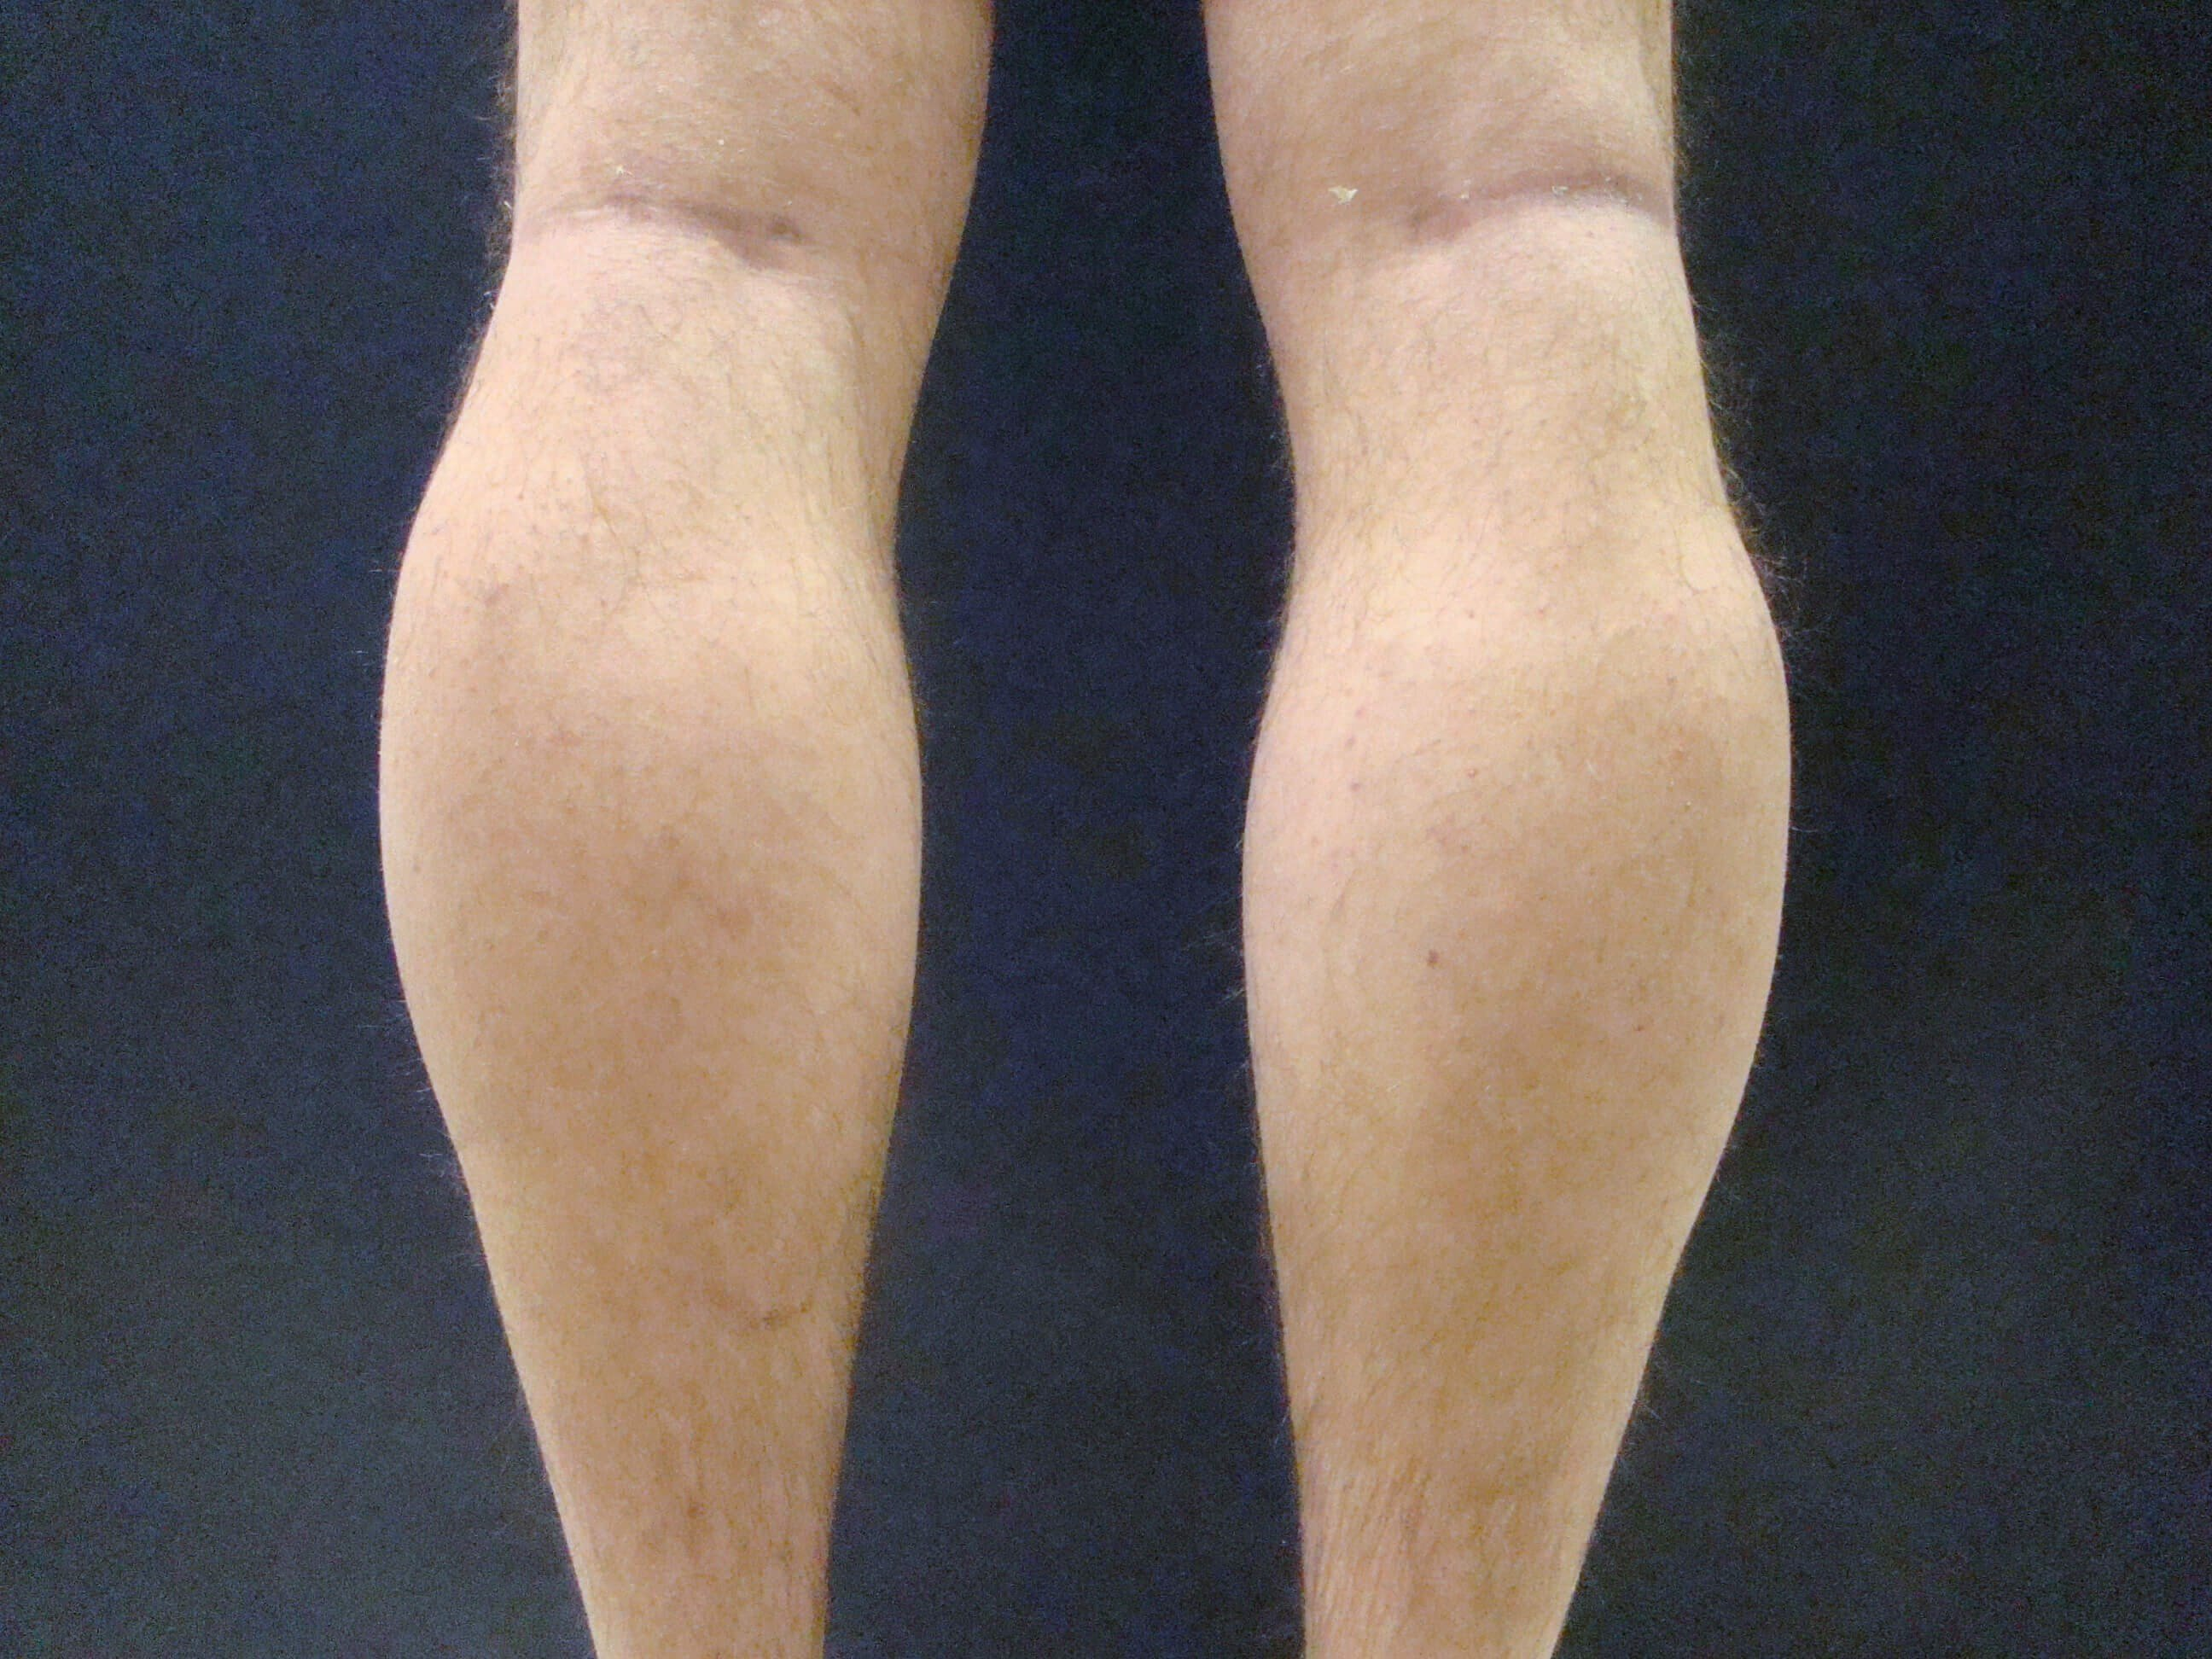 Calf Implant Post-Op Calf Augmentation